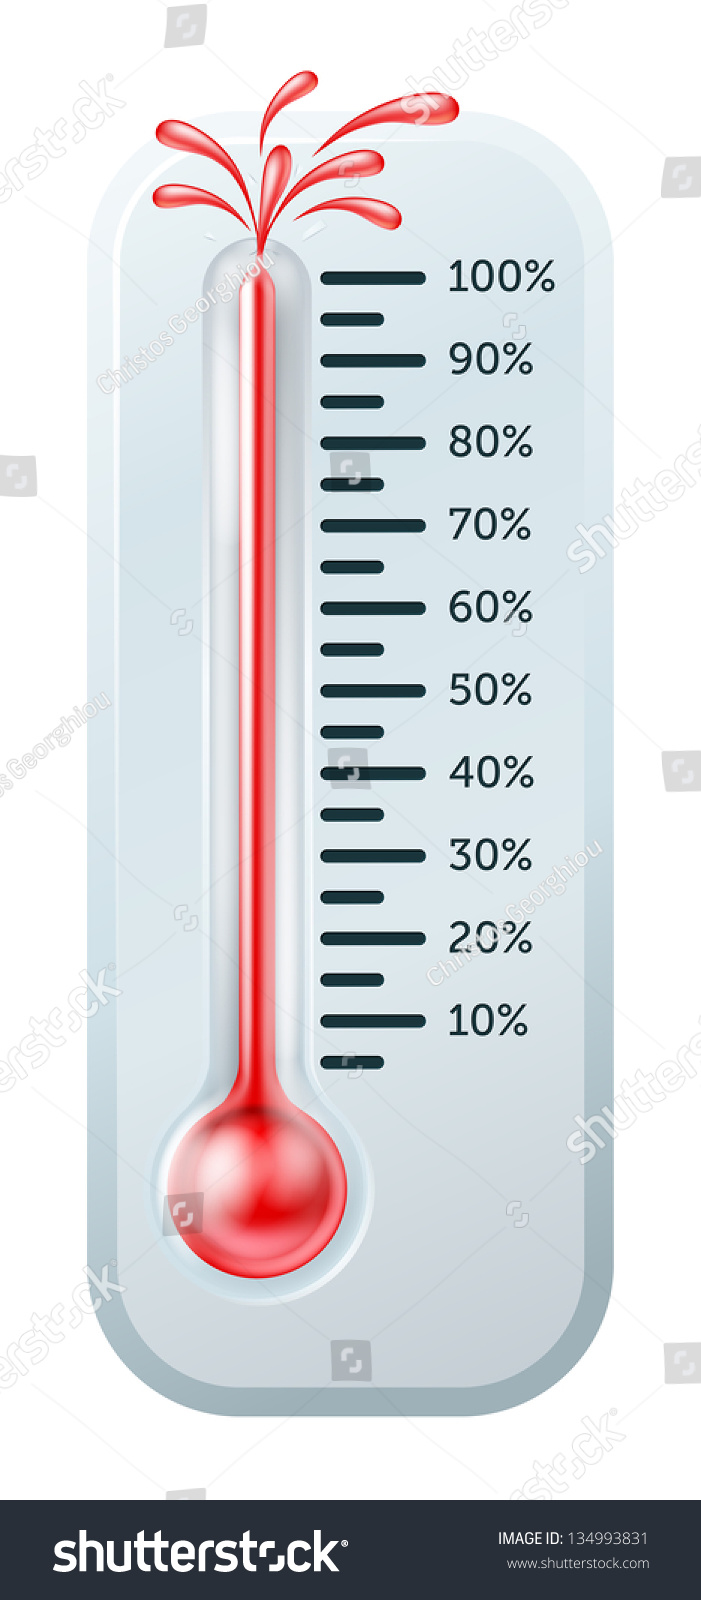 illustration of a thermometer with the red alcohol bursting through the top